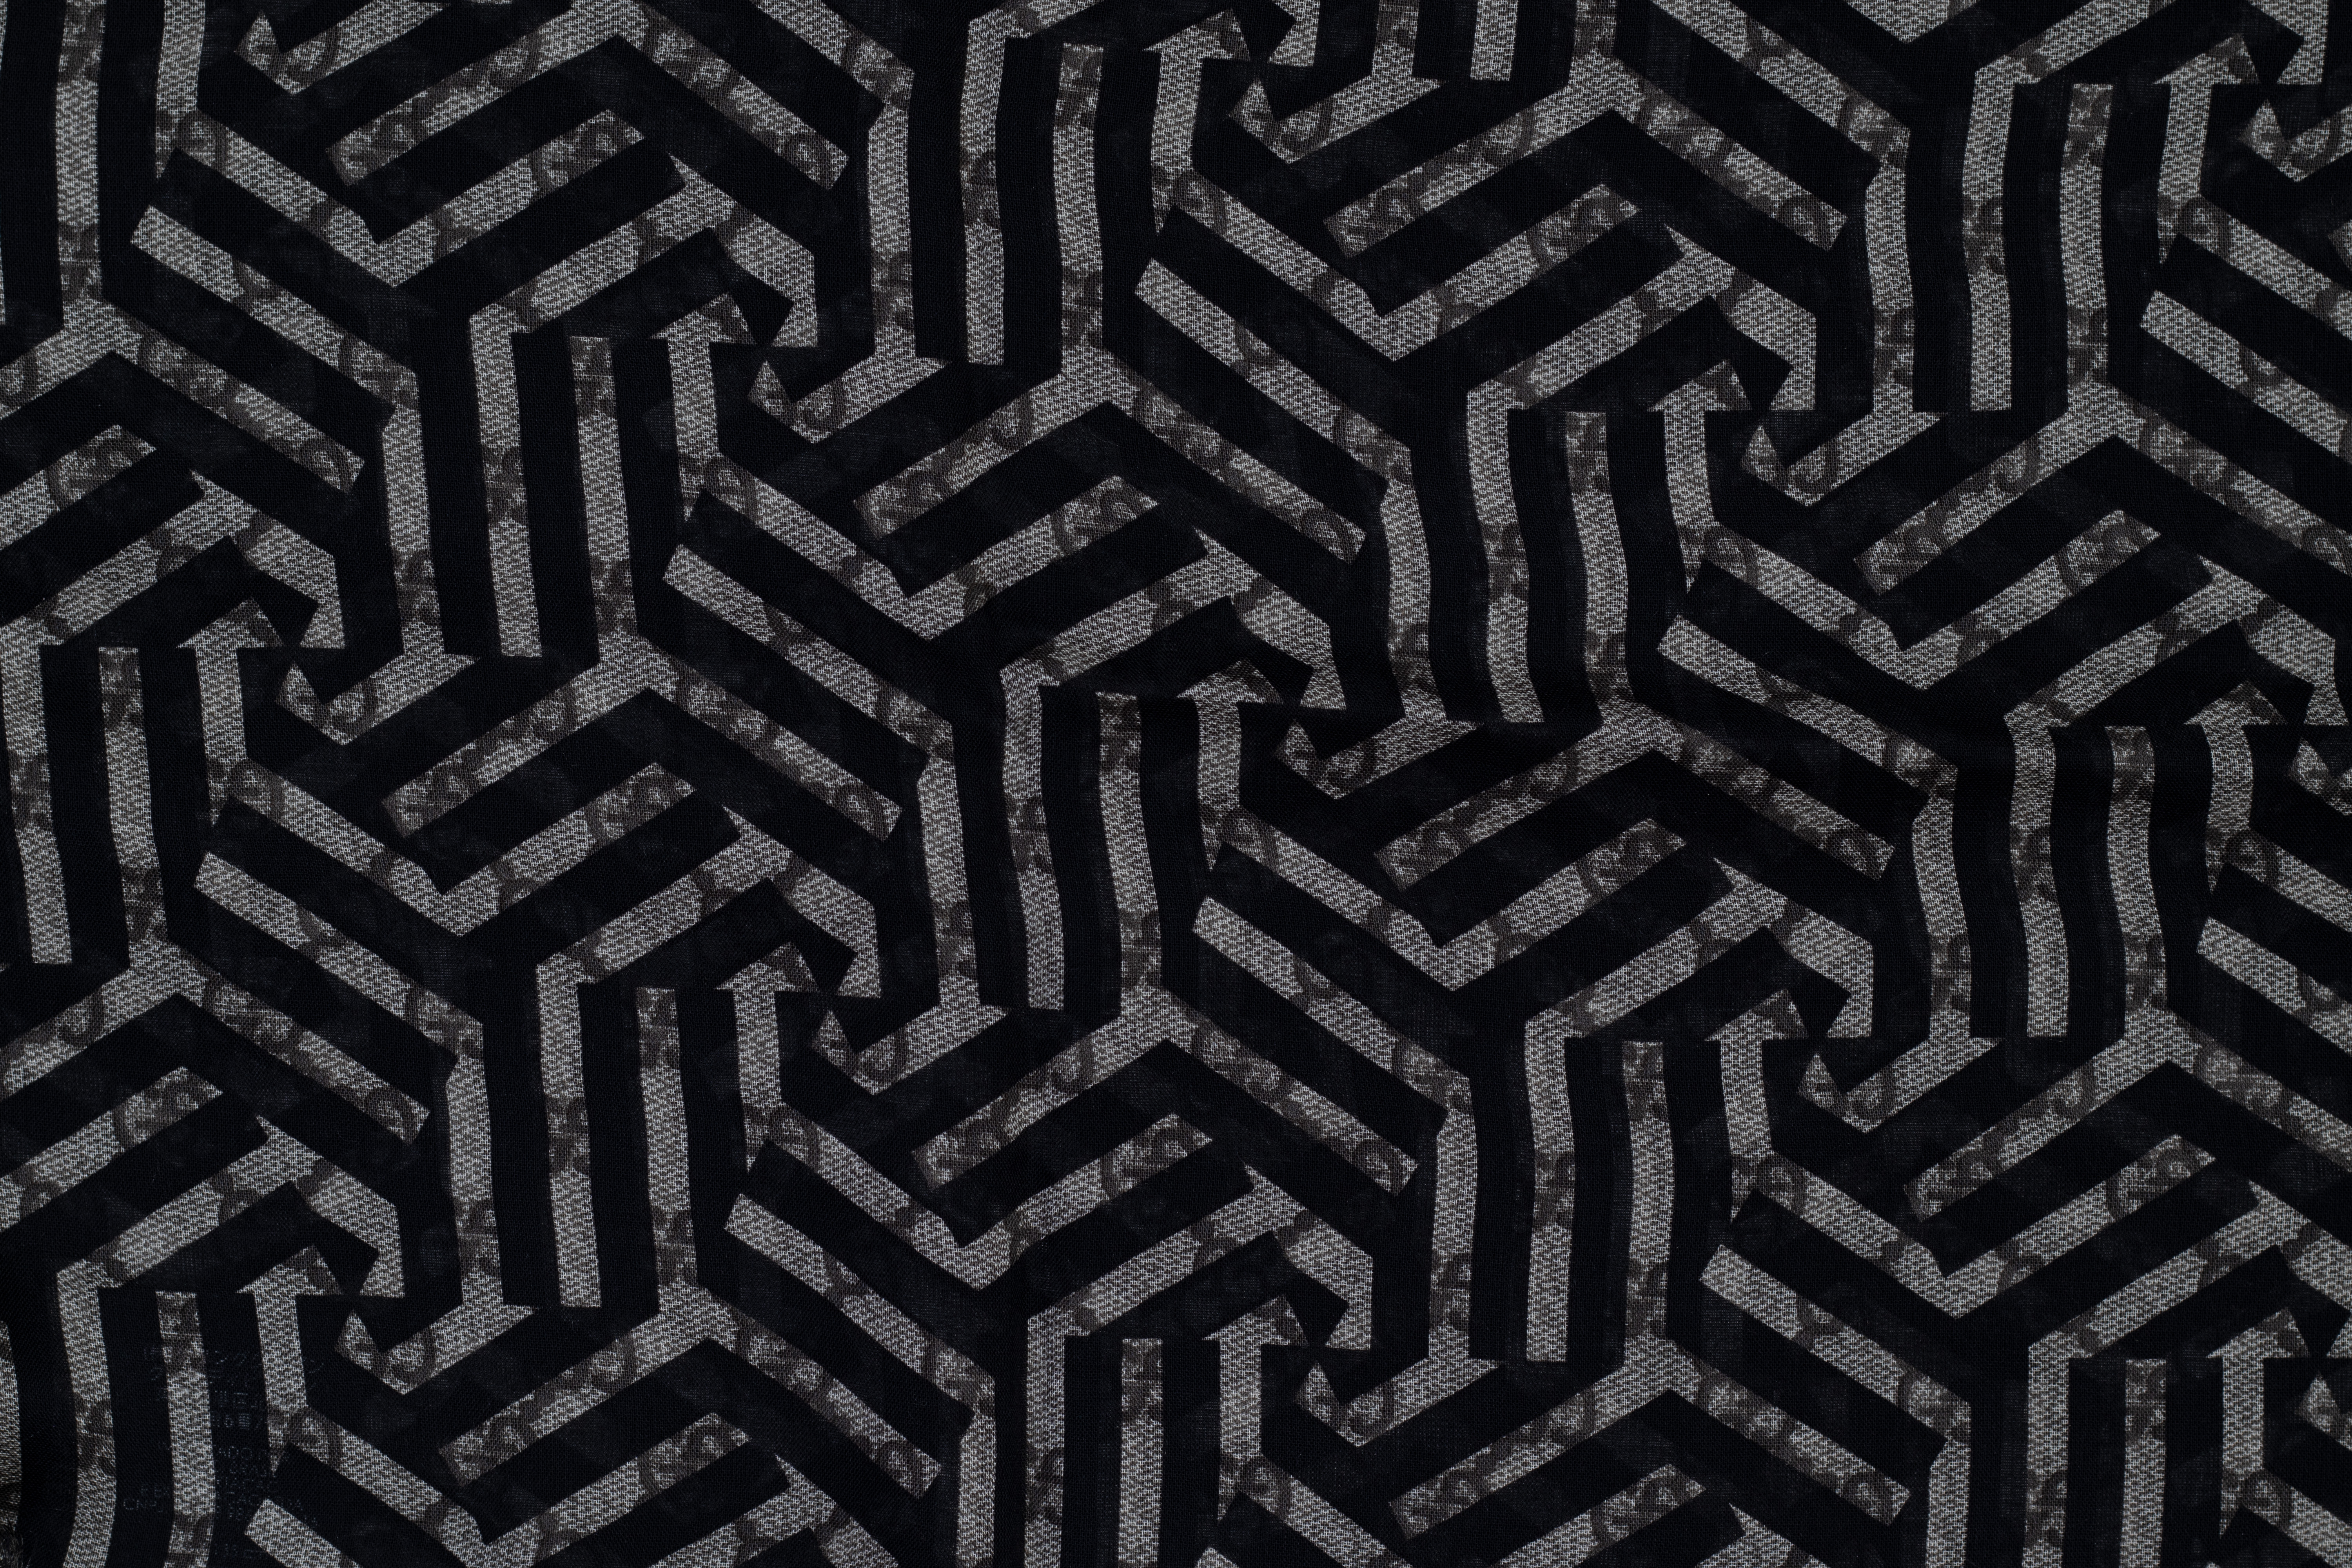 A GUCCI MONOGRAM SCARF - Image 2 of 6